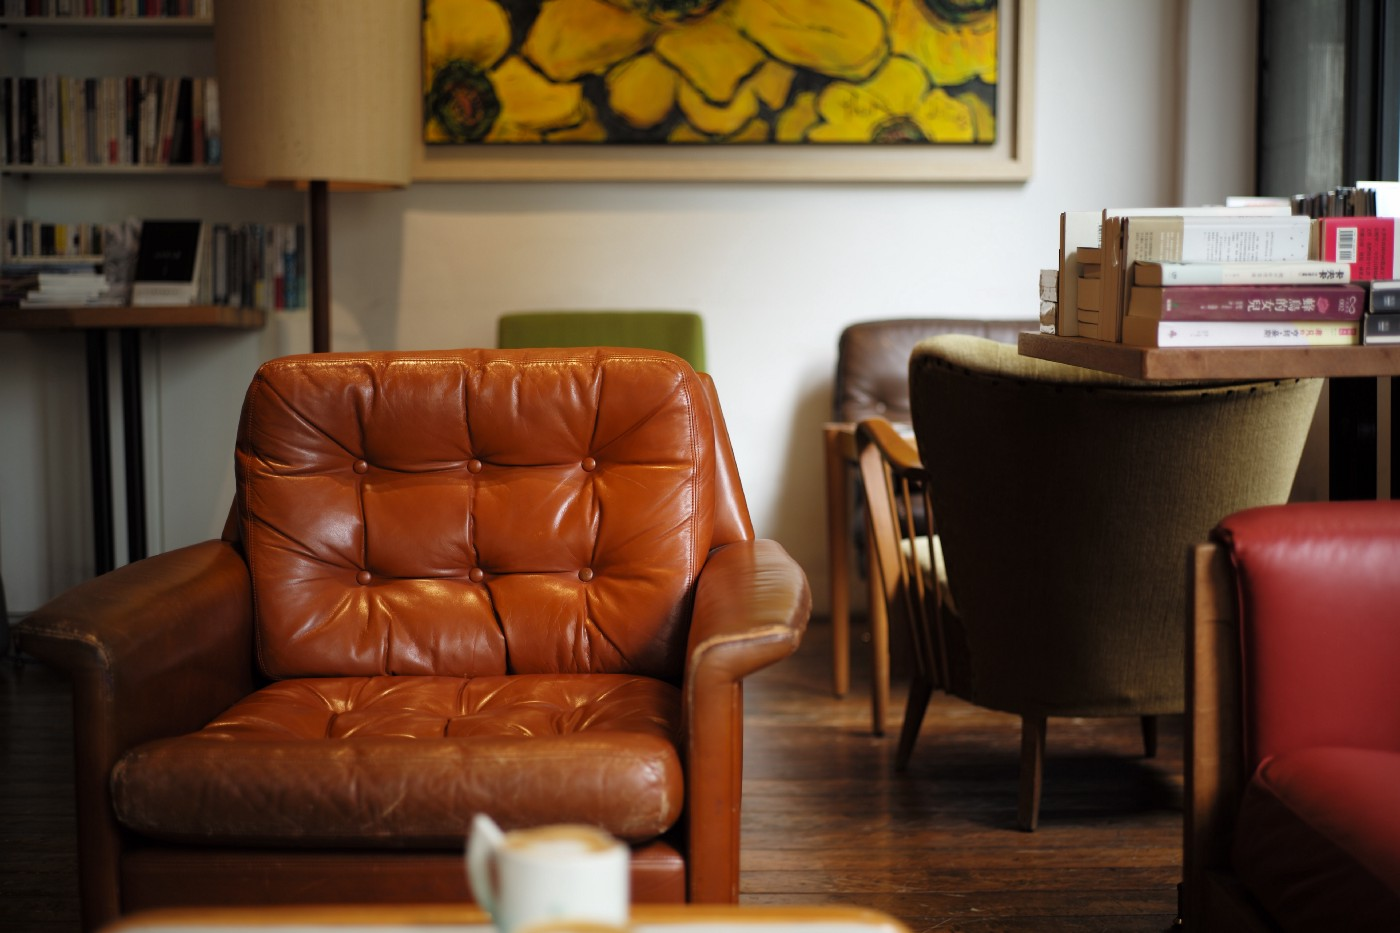 A brown leather club chair is the focus with a desk and other chairs in the background.